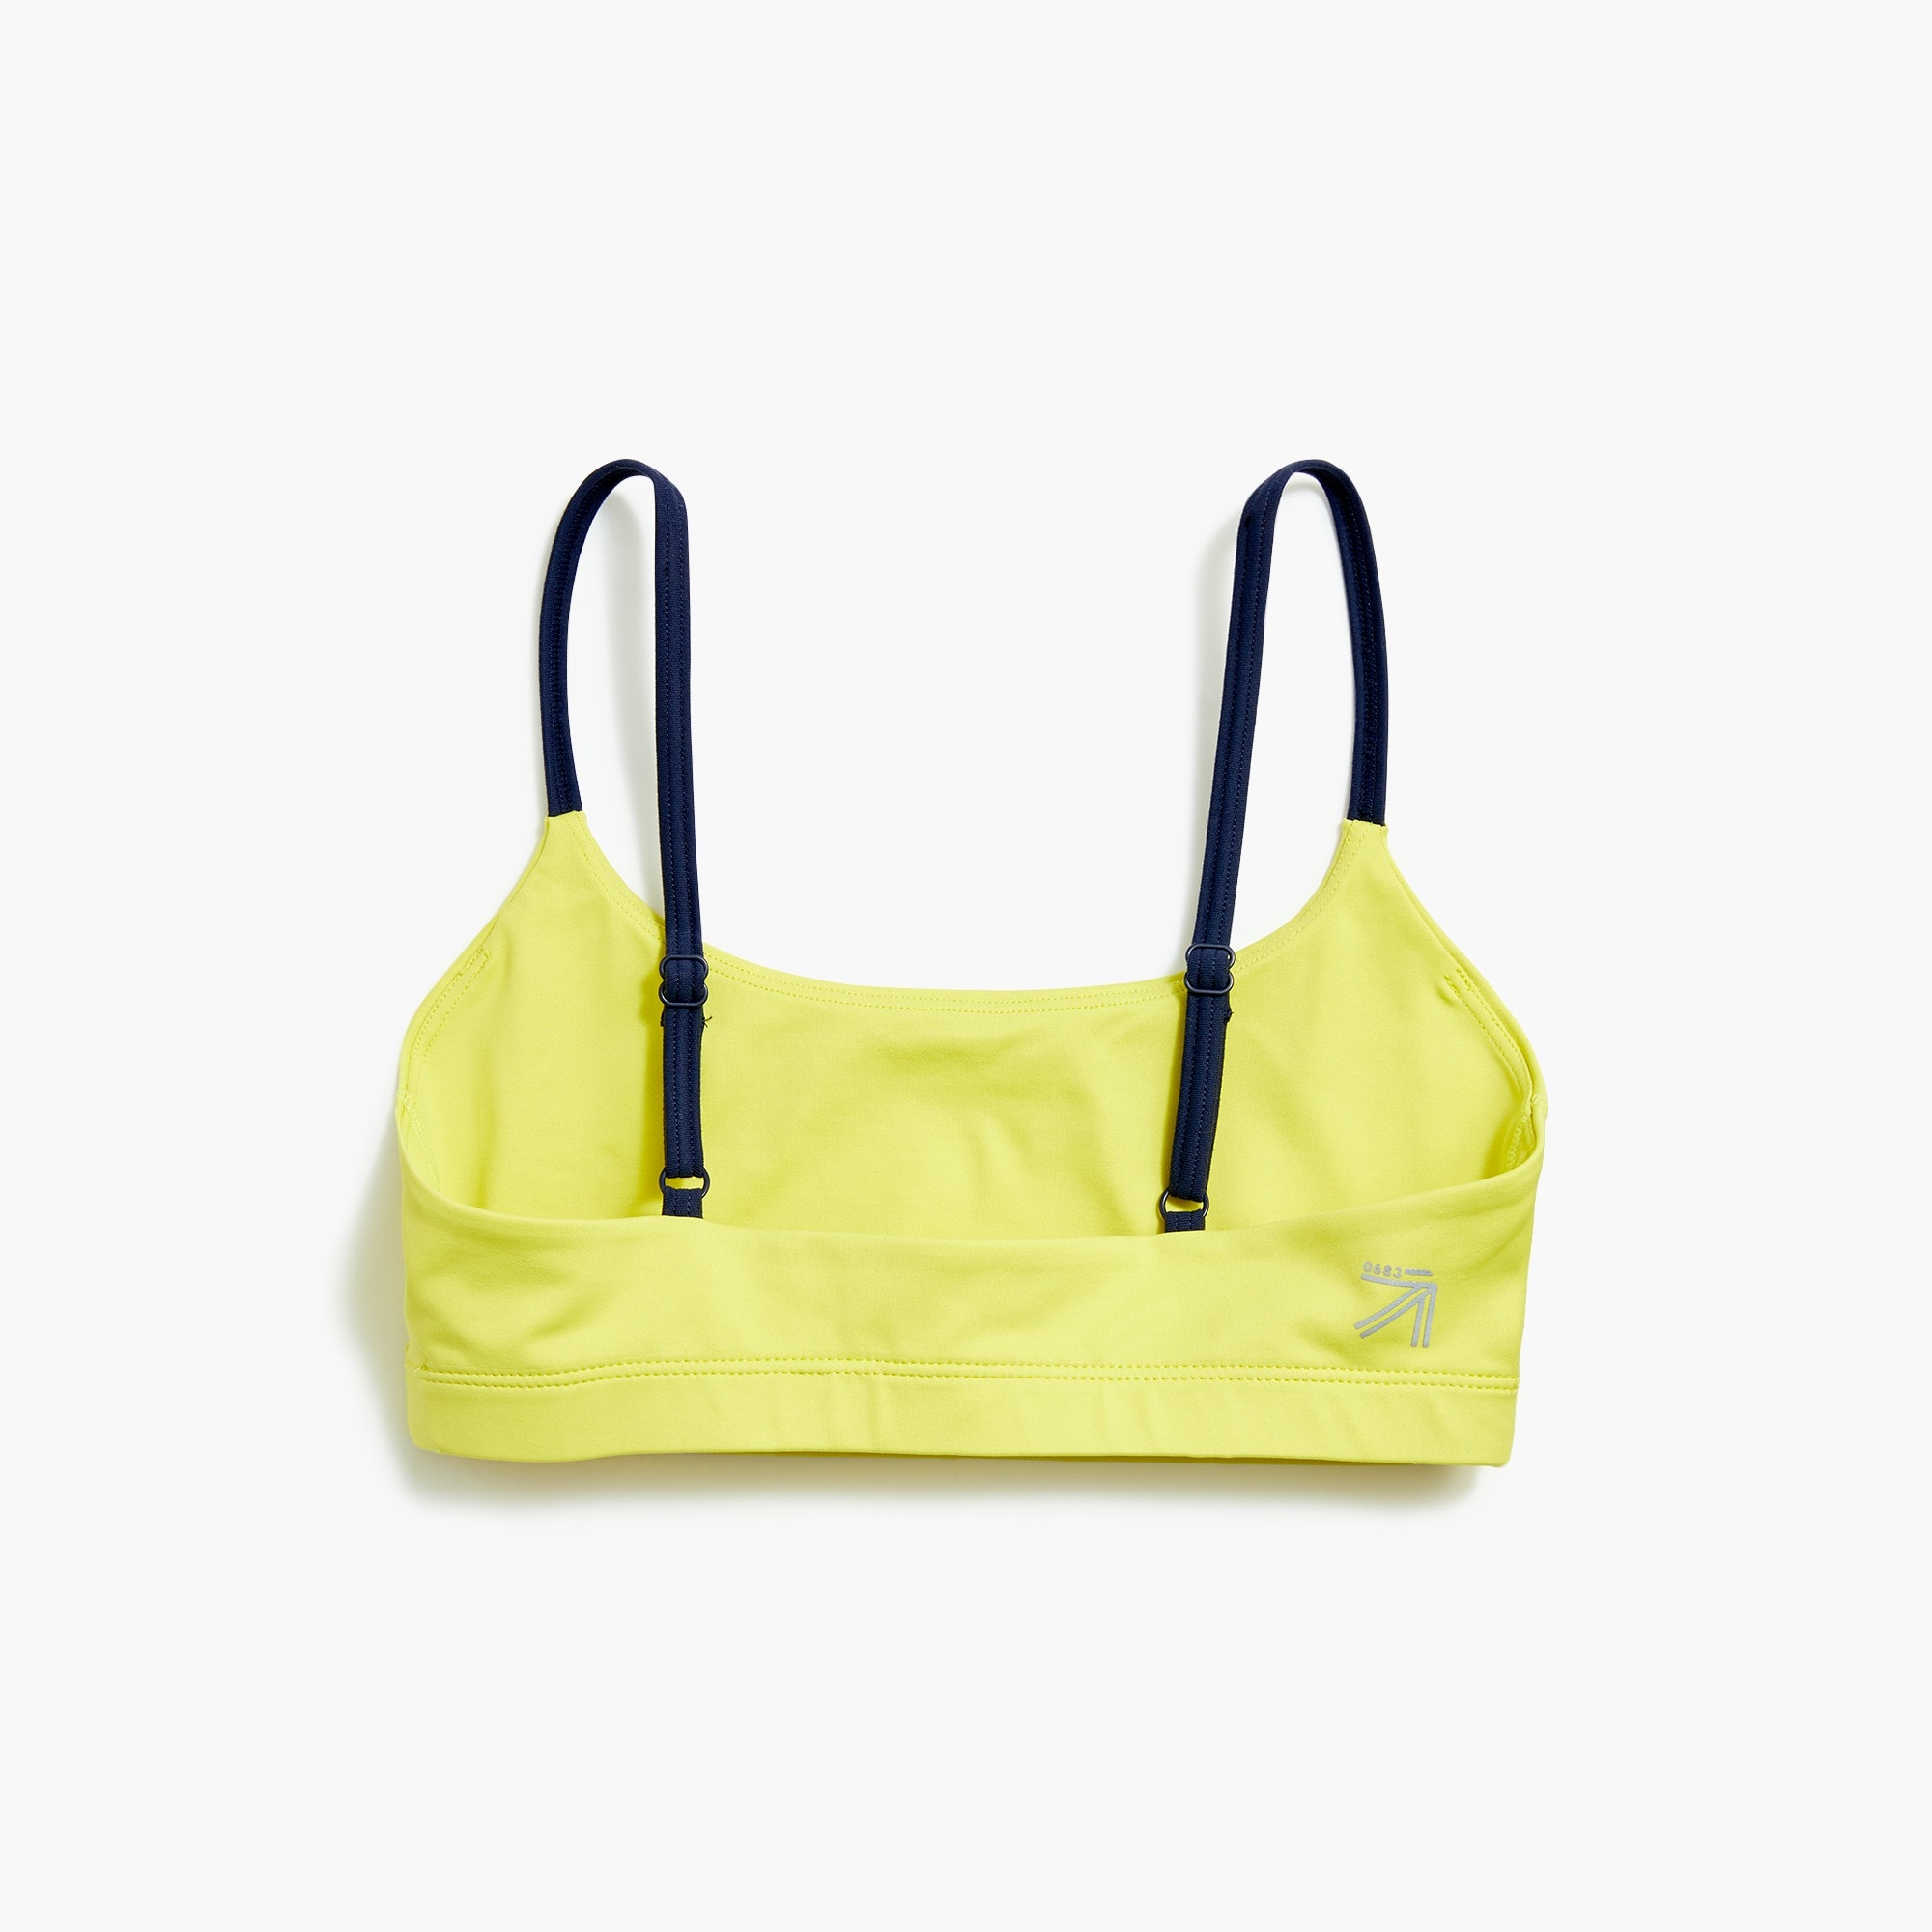 New Balance® for J.Crew adjustable sports bra in Trinamic fabric